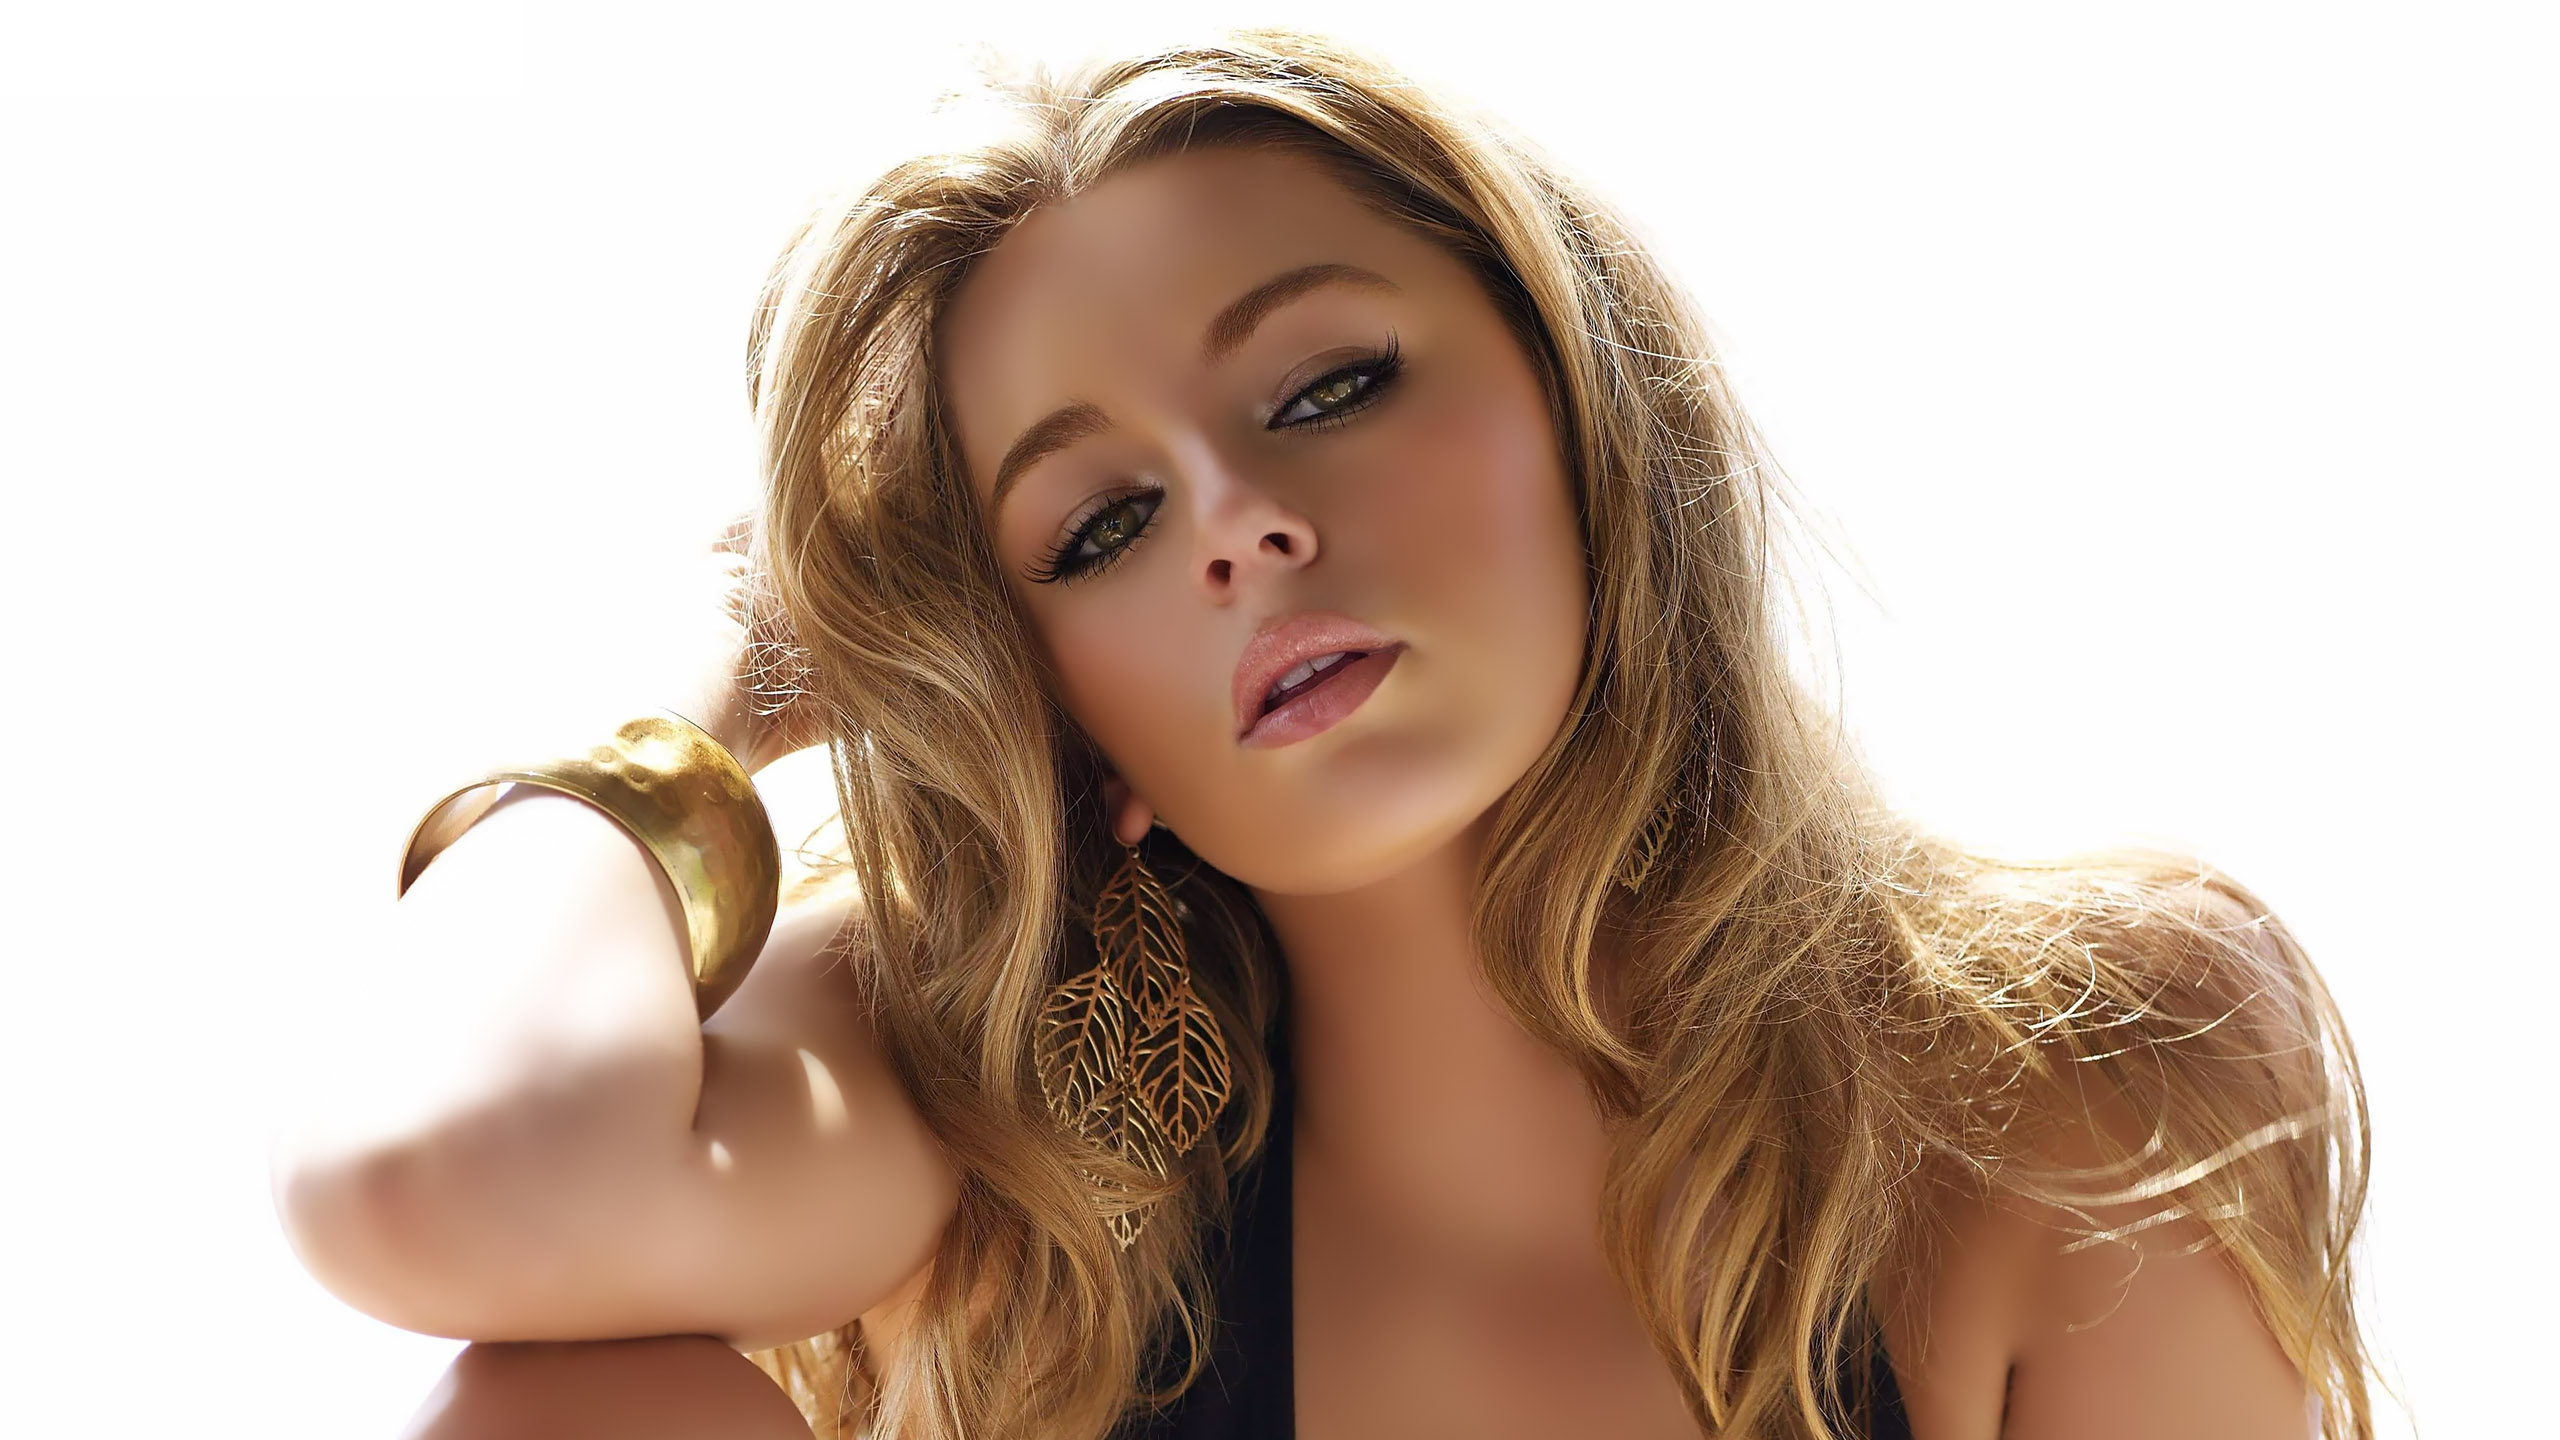 Keeley Hazell HD Wallpaper Background Image 2560x1440 ID 2560x1440